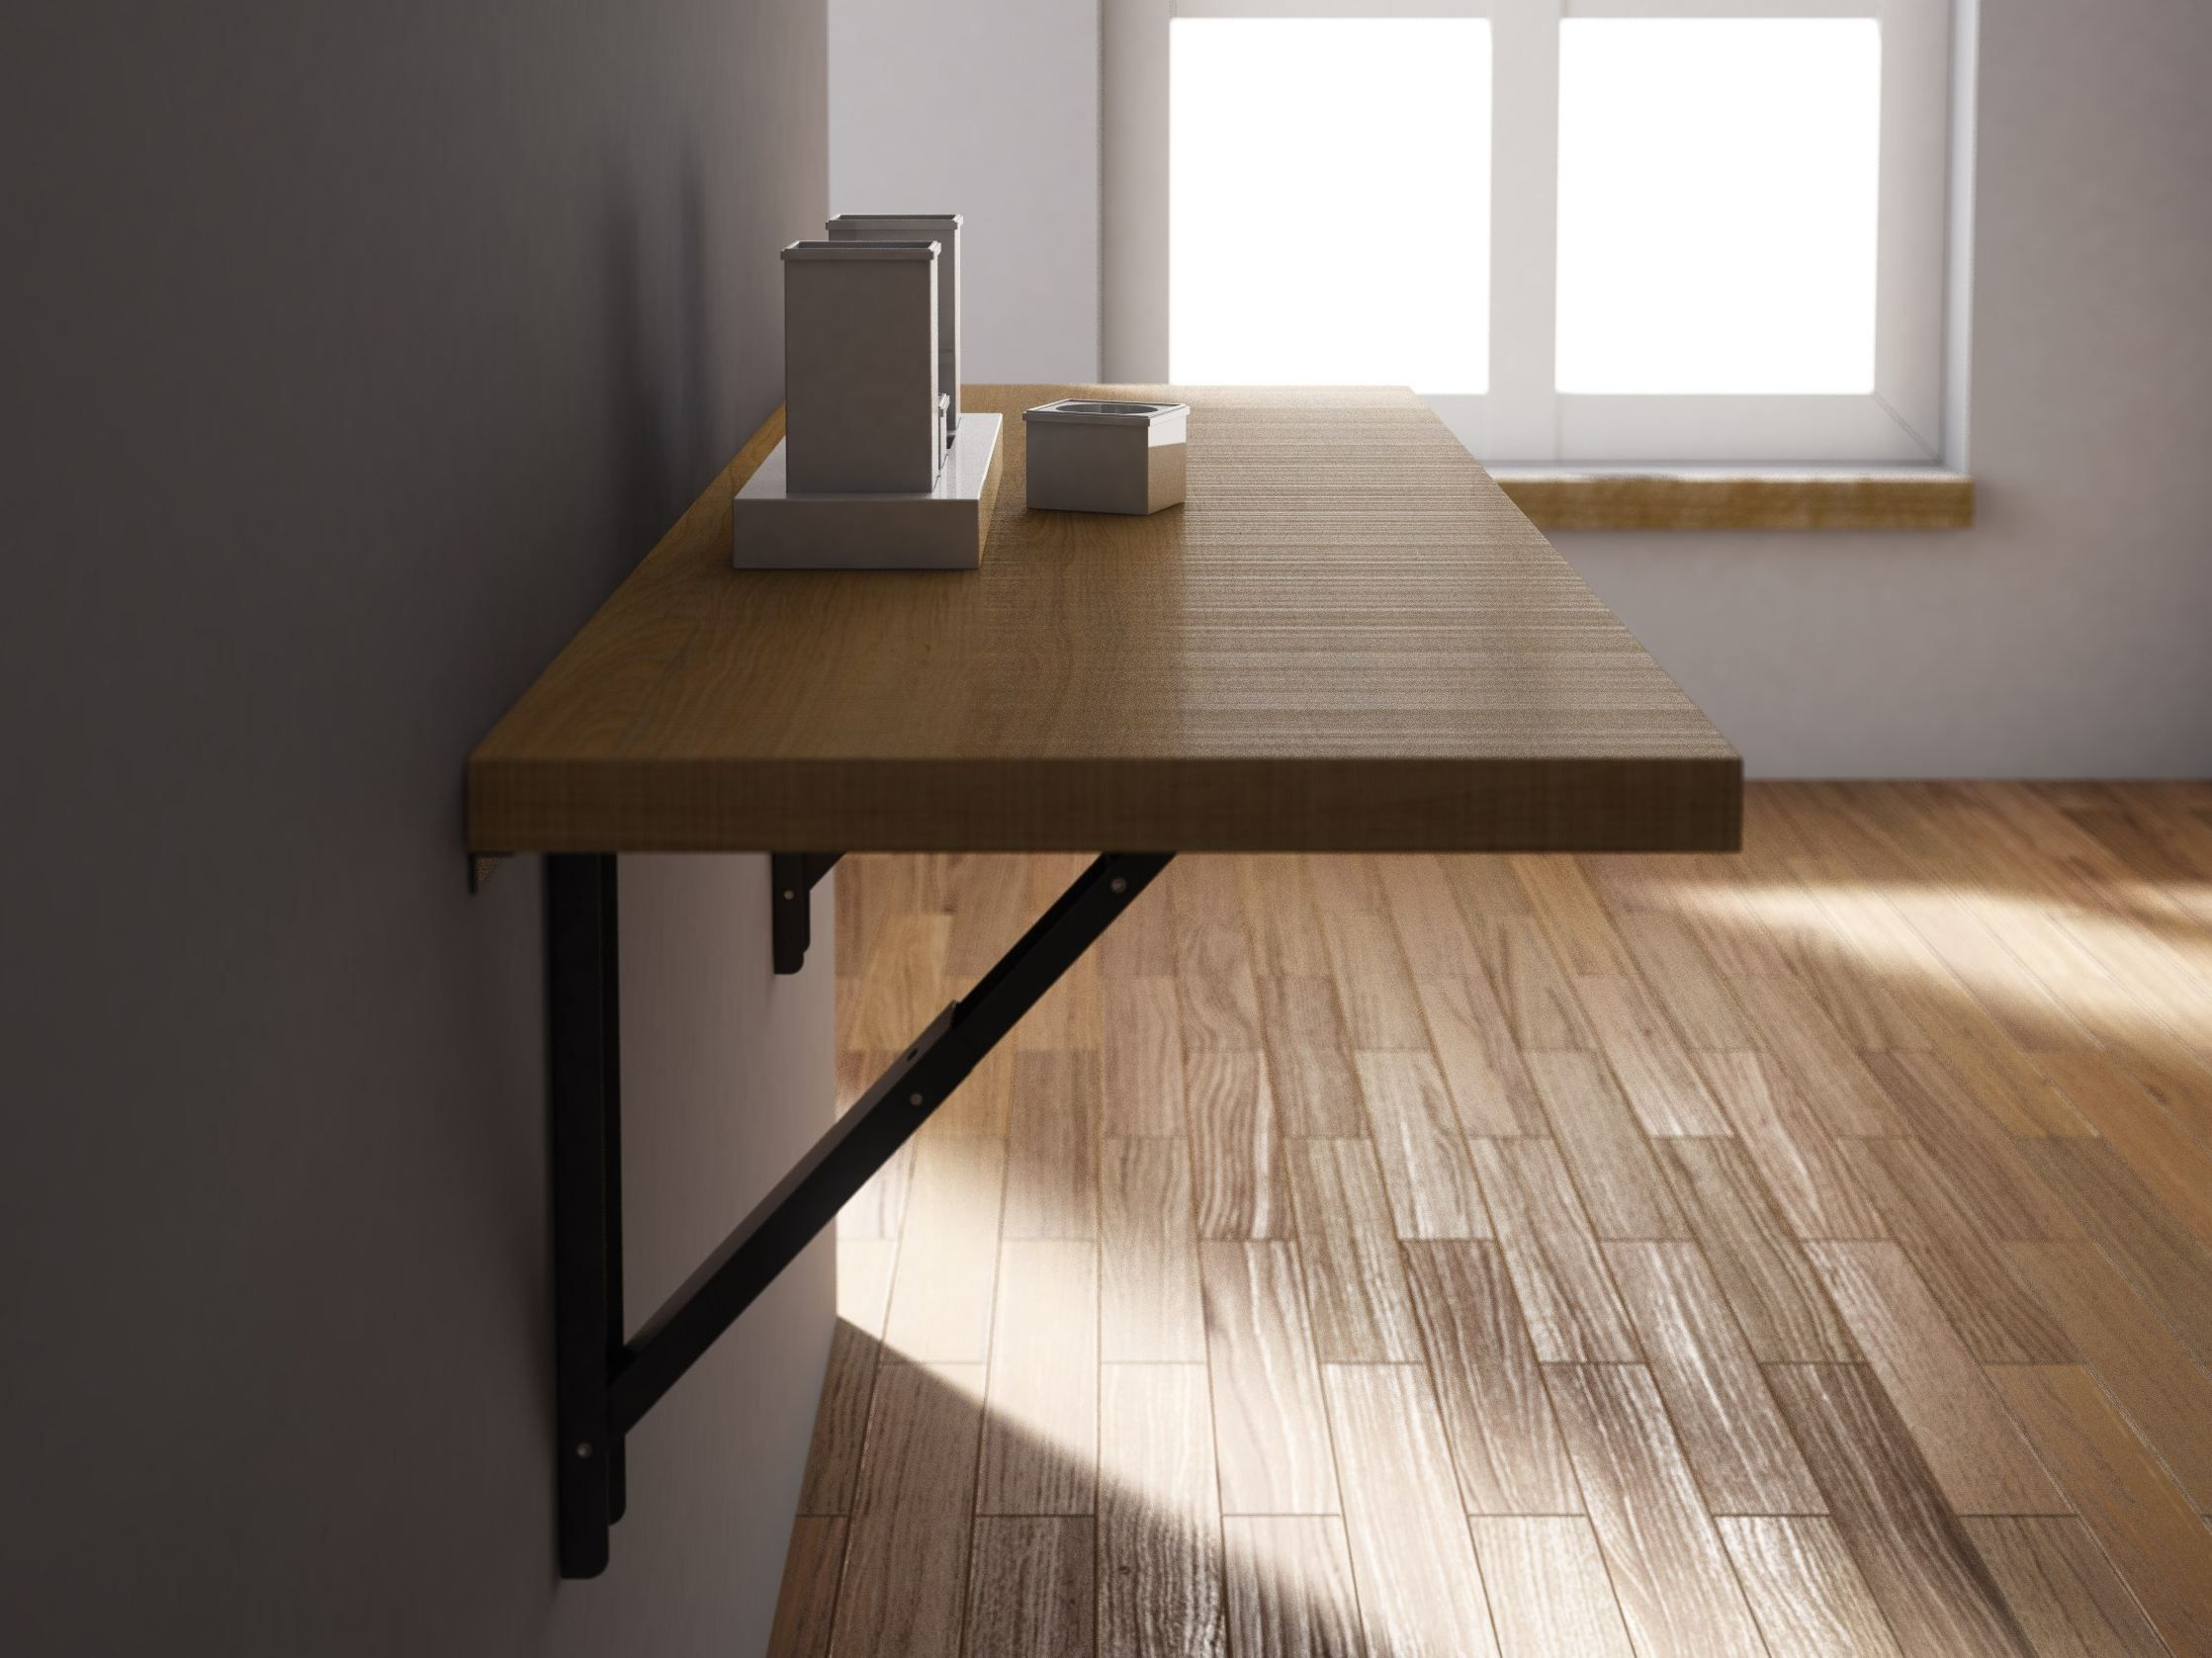 Wall mounted drop-leaf wooden table VULCANO - CANCIO | Breakfast ...